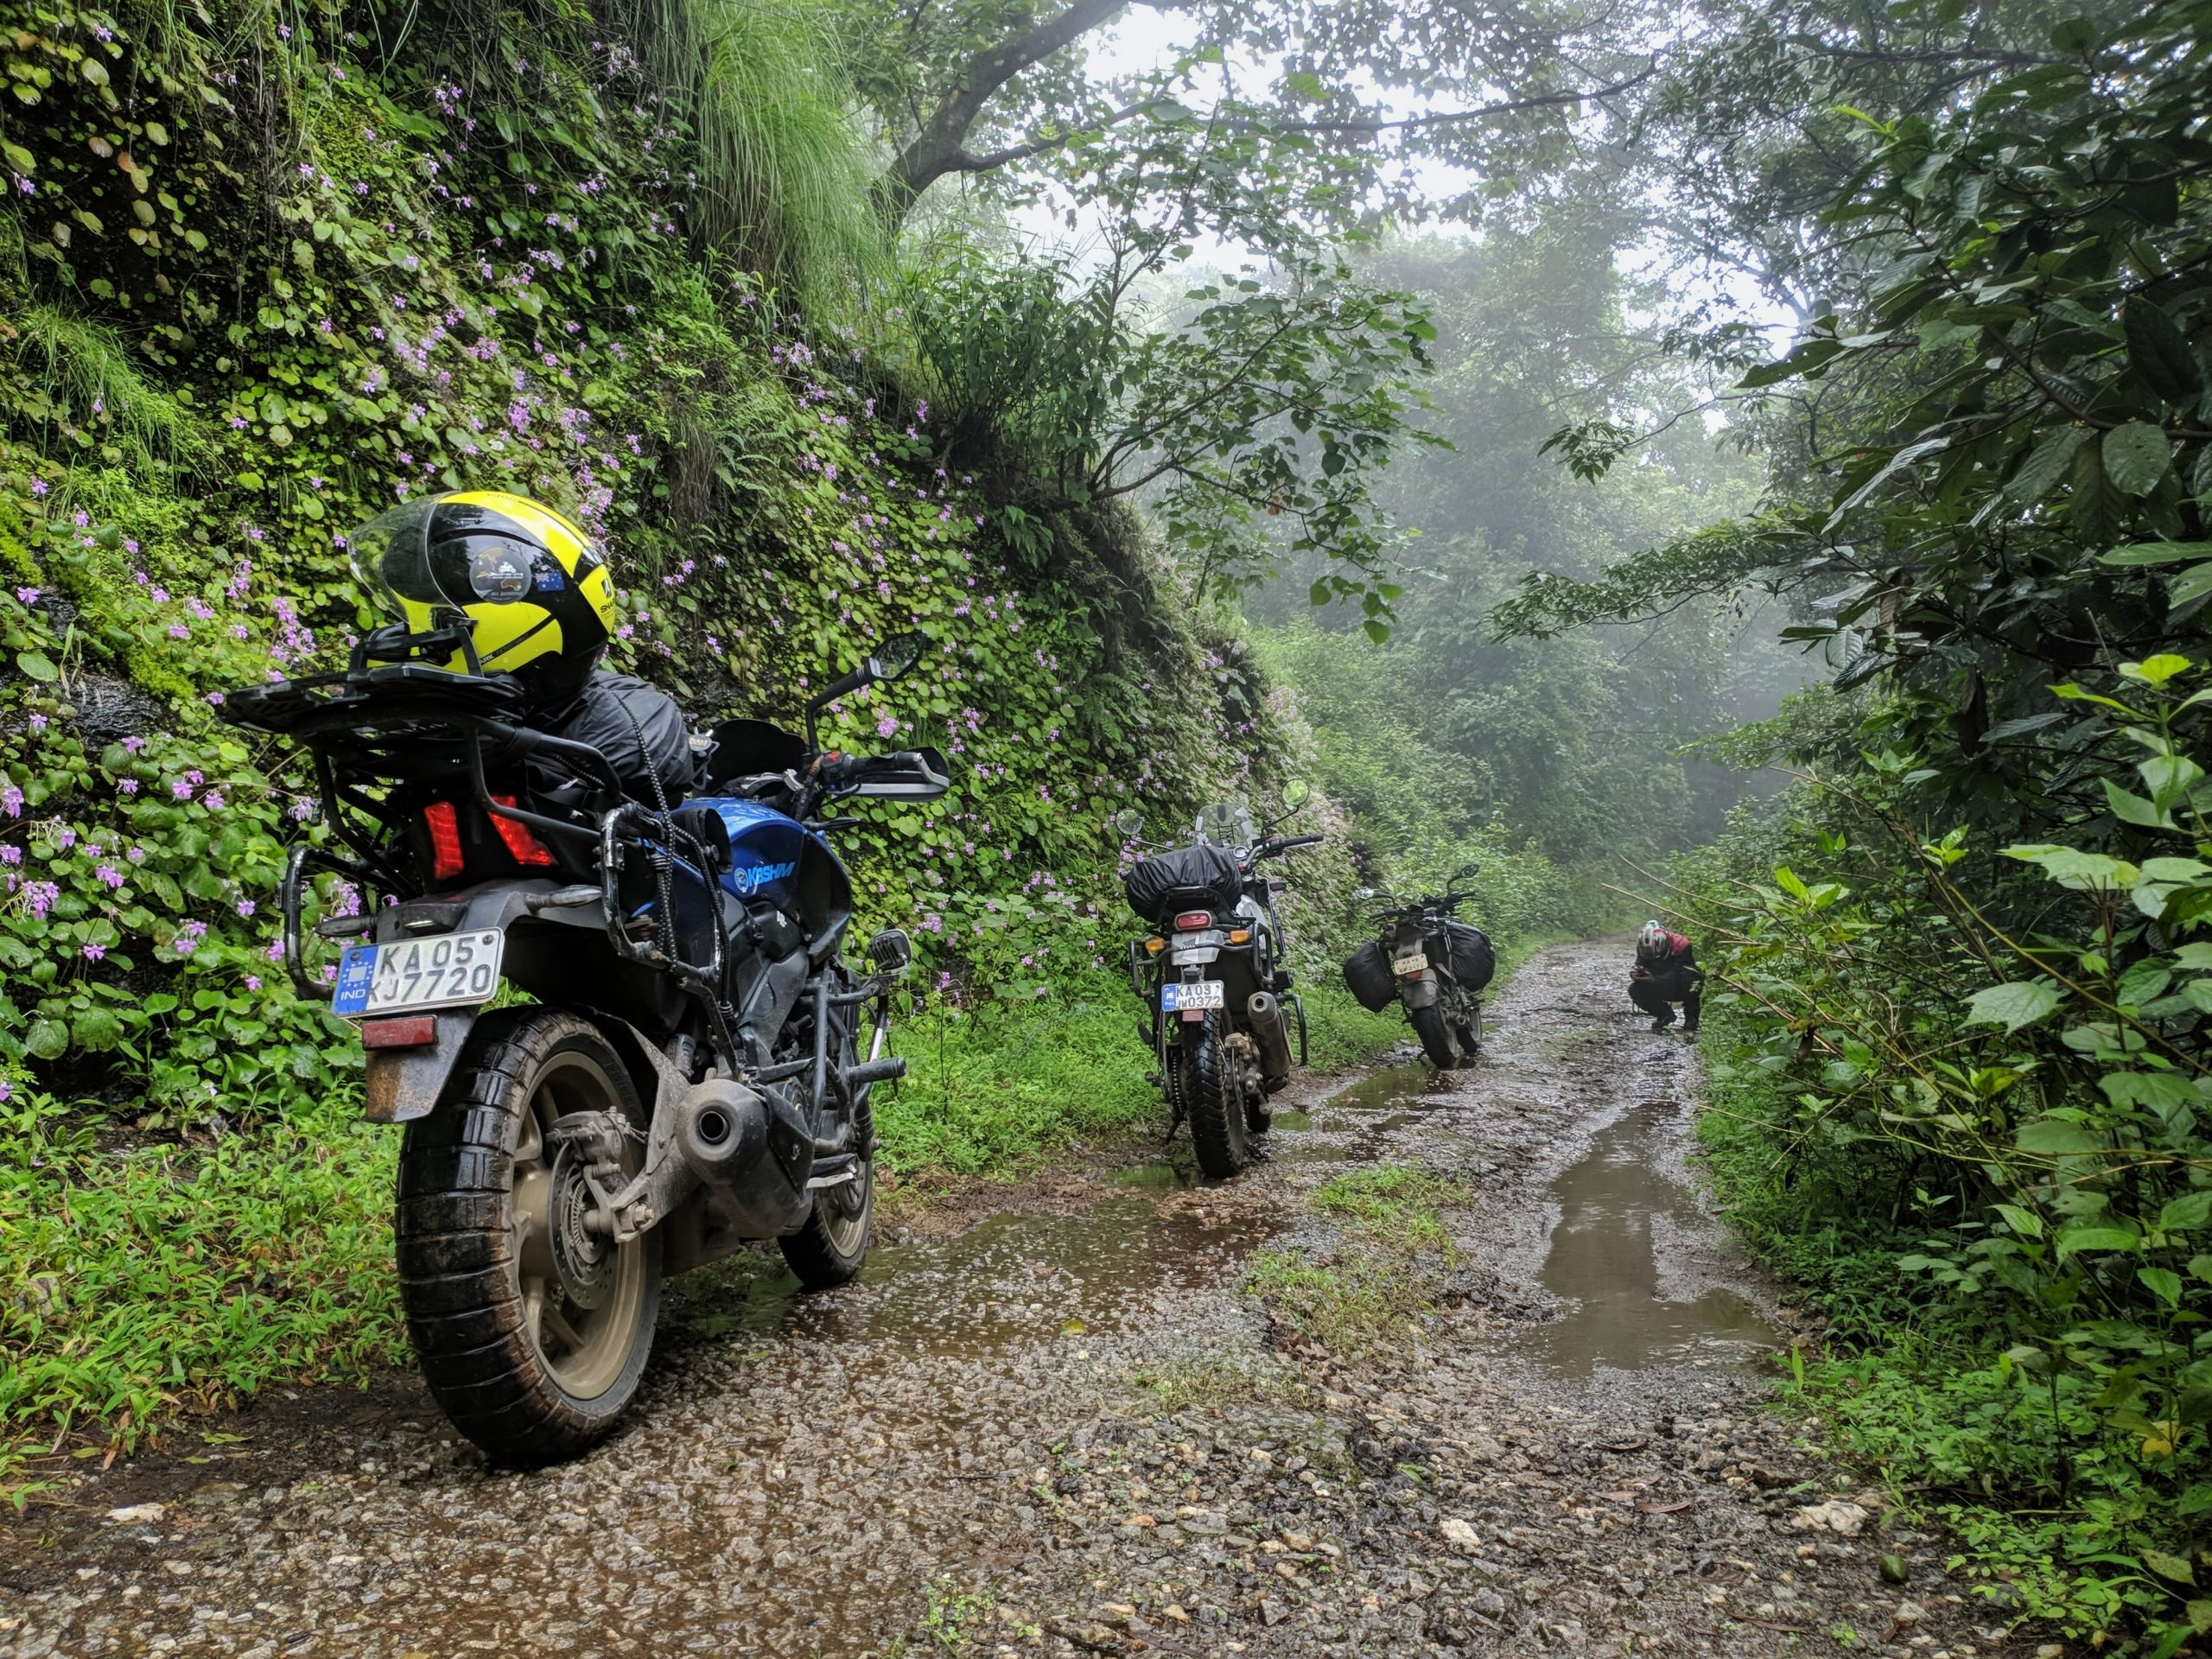 motorcycles on a path